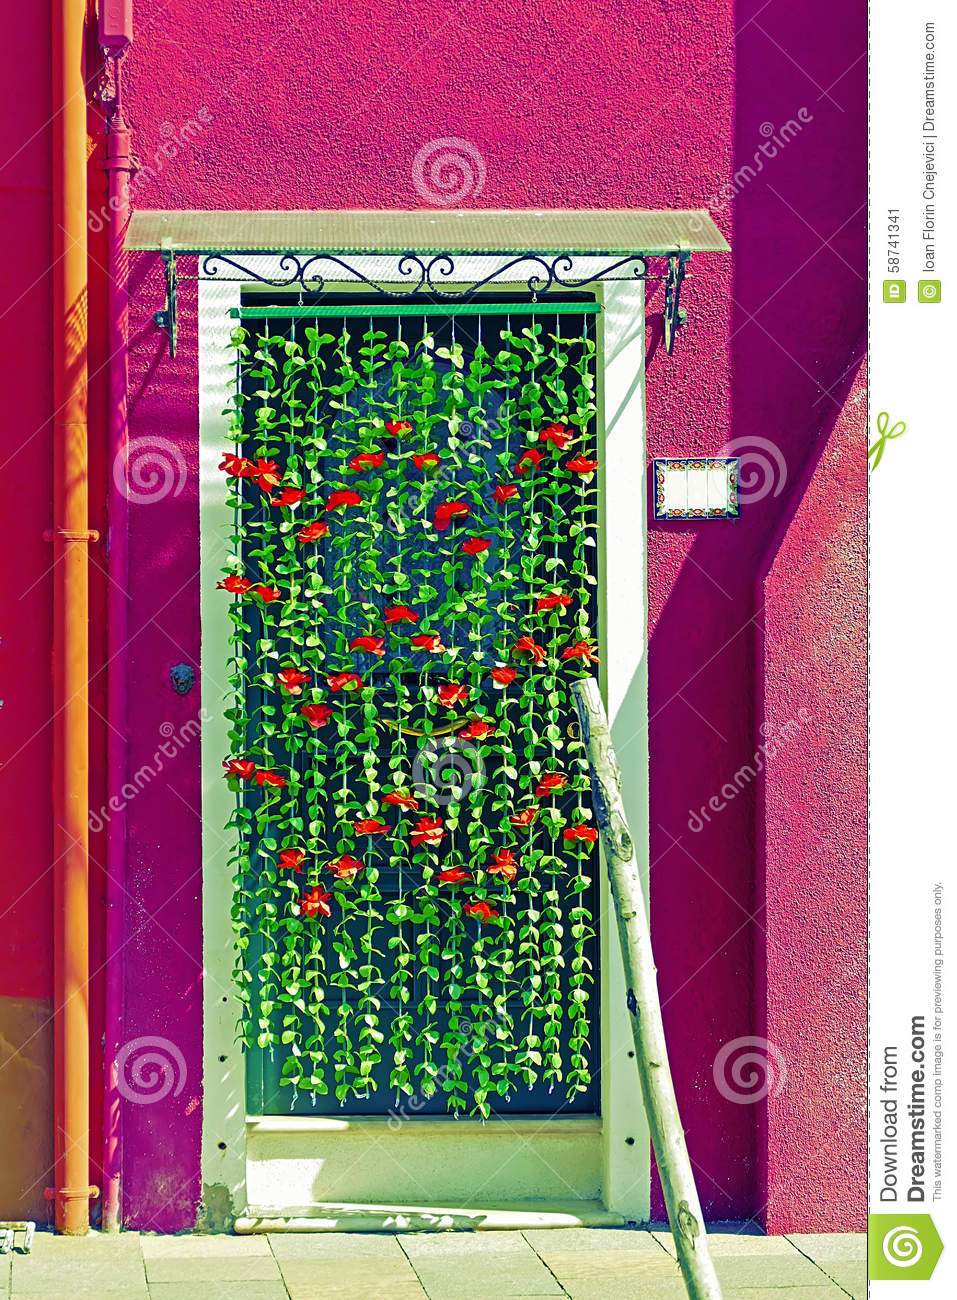 Ornamental flowers curtain at the entrance of a house